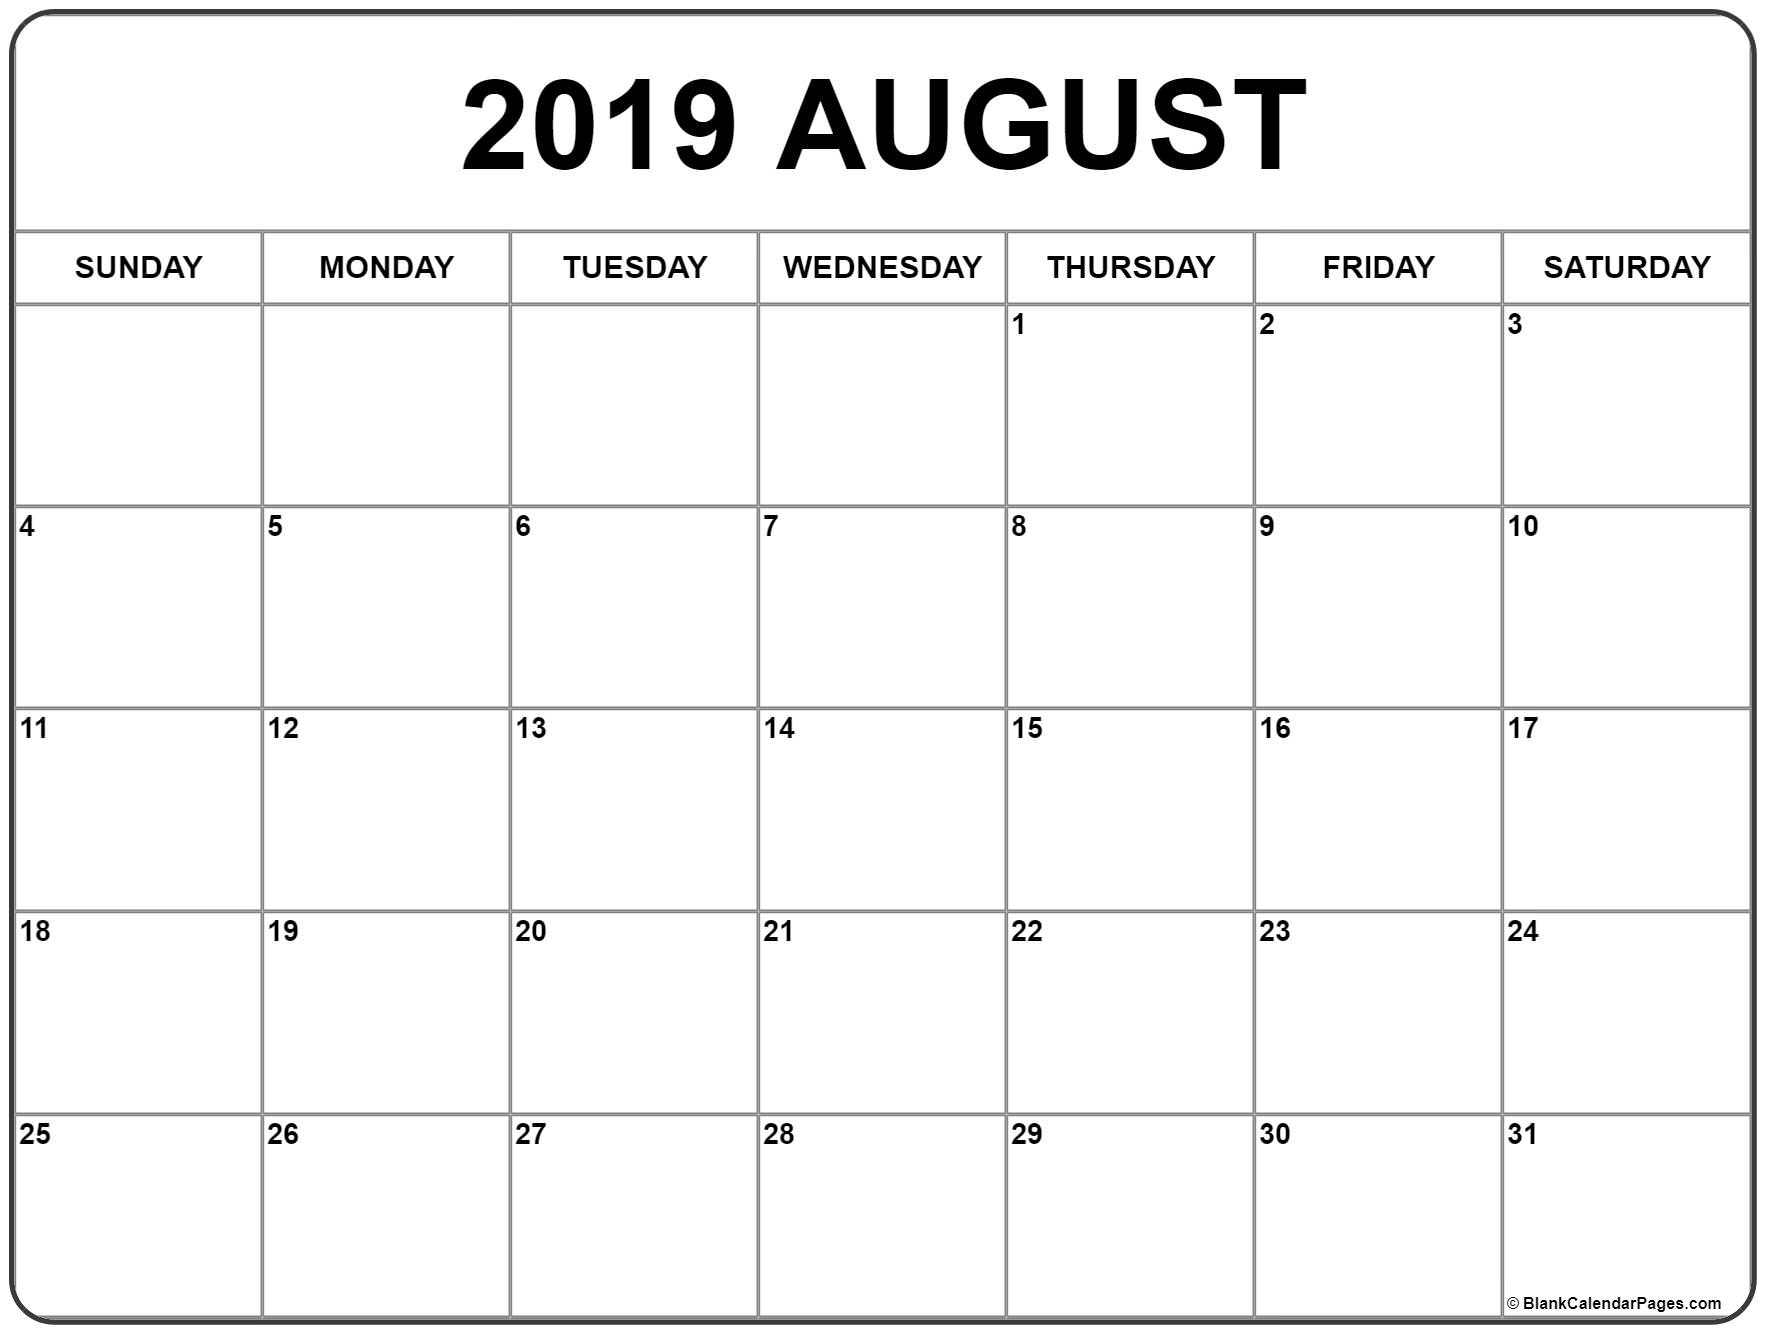 August 2019 Calendar | Free Printable Monthly Calendars regarding Blank Printable Calendar Pages Aug